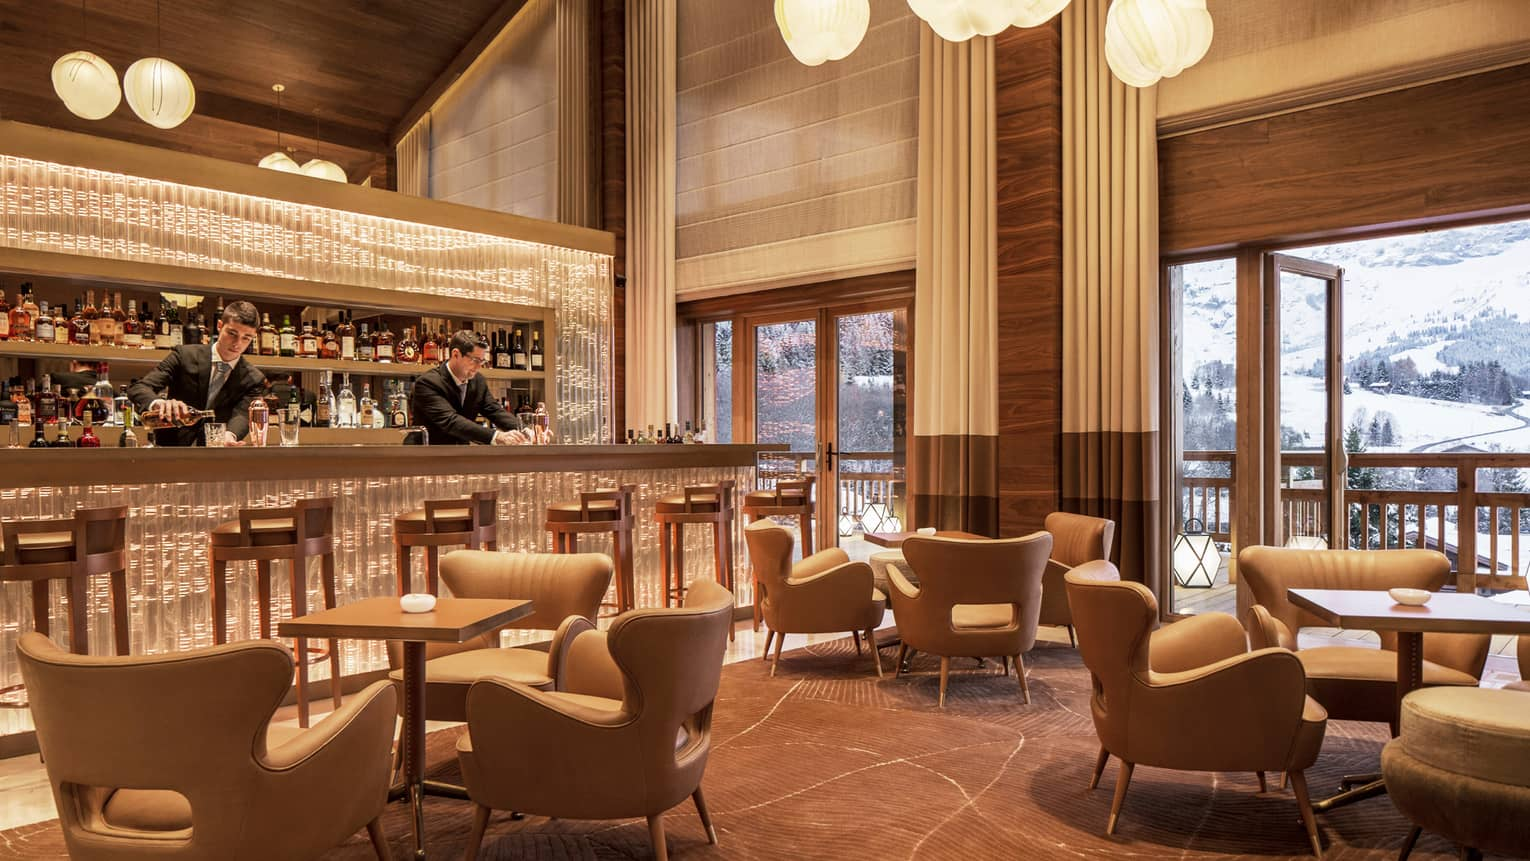 Bartenders mix drinks at Le 1920 bar by midcentury-style lounge chairs, tables, under soaring ceilings